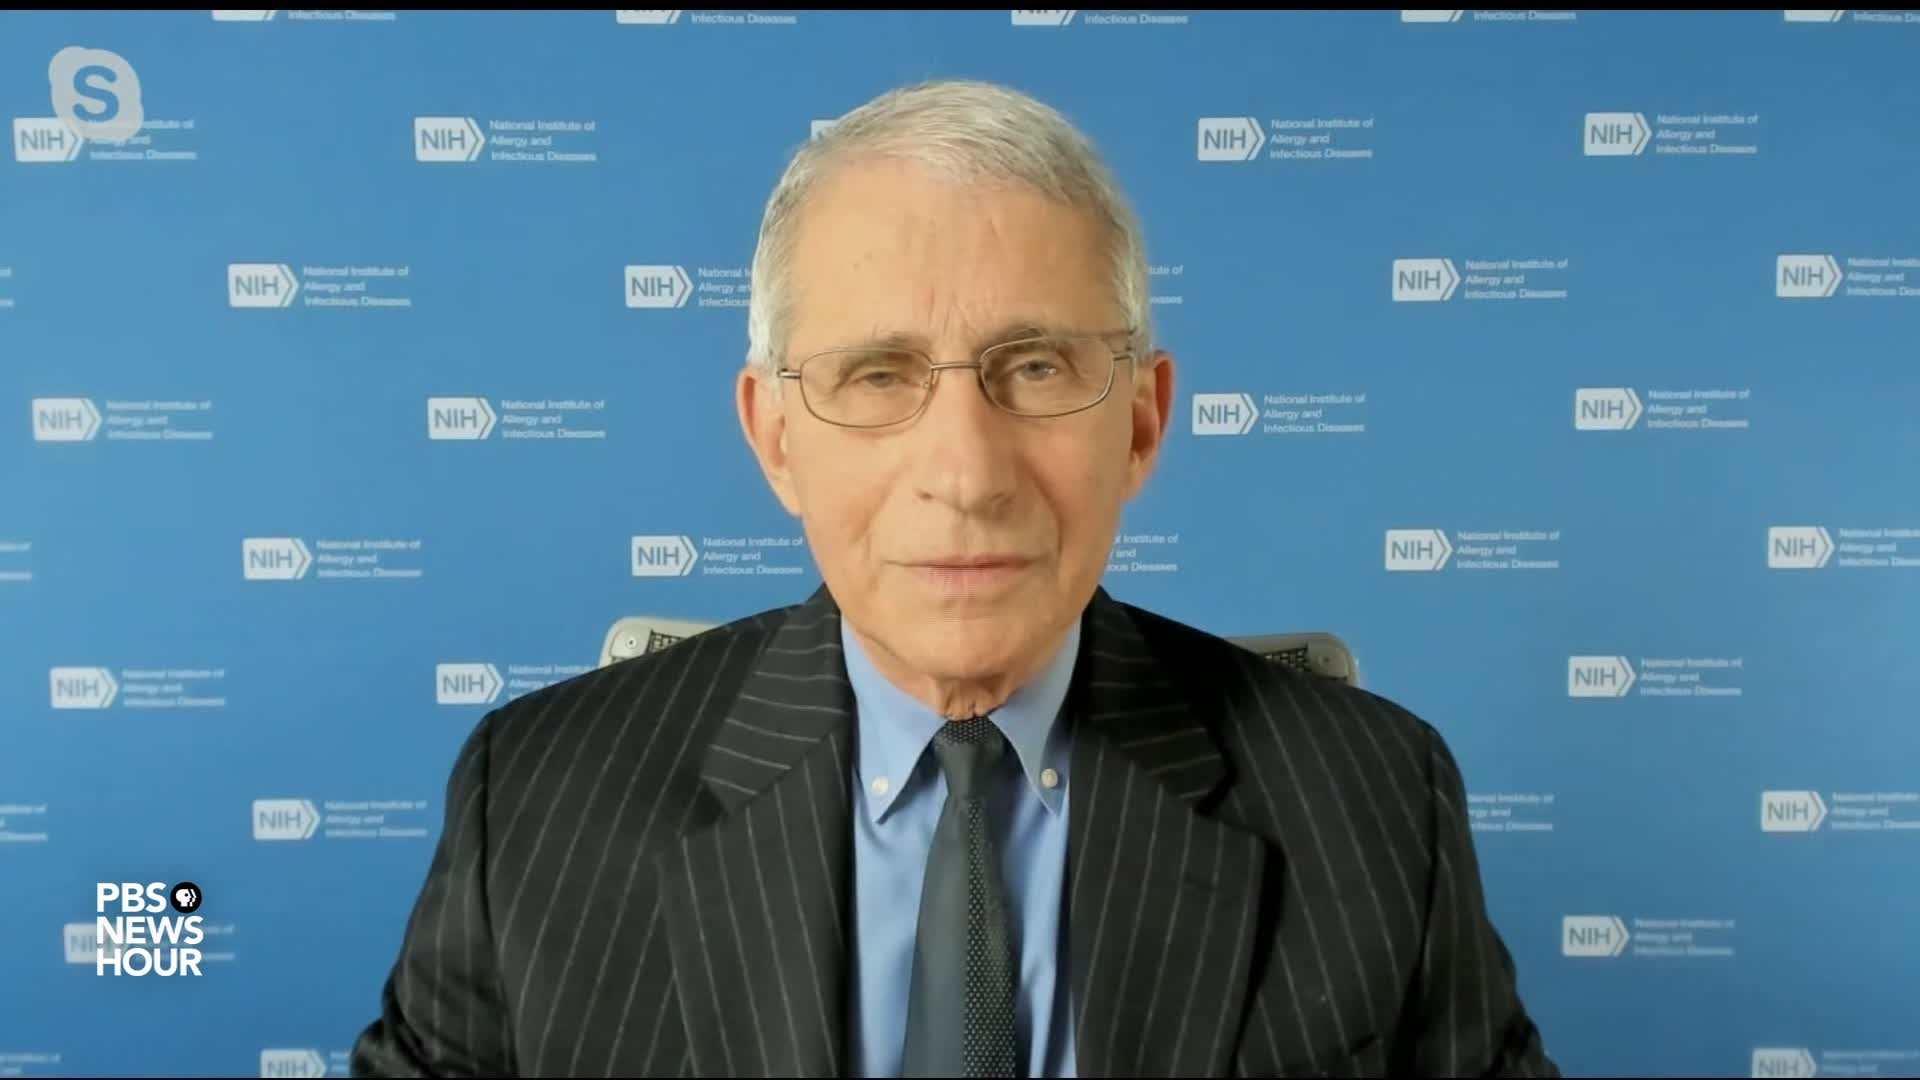 Dr. Anthony Fauci, the director of the National Institute of Allergy and Infectious Diseases.